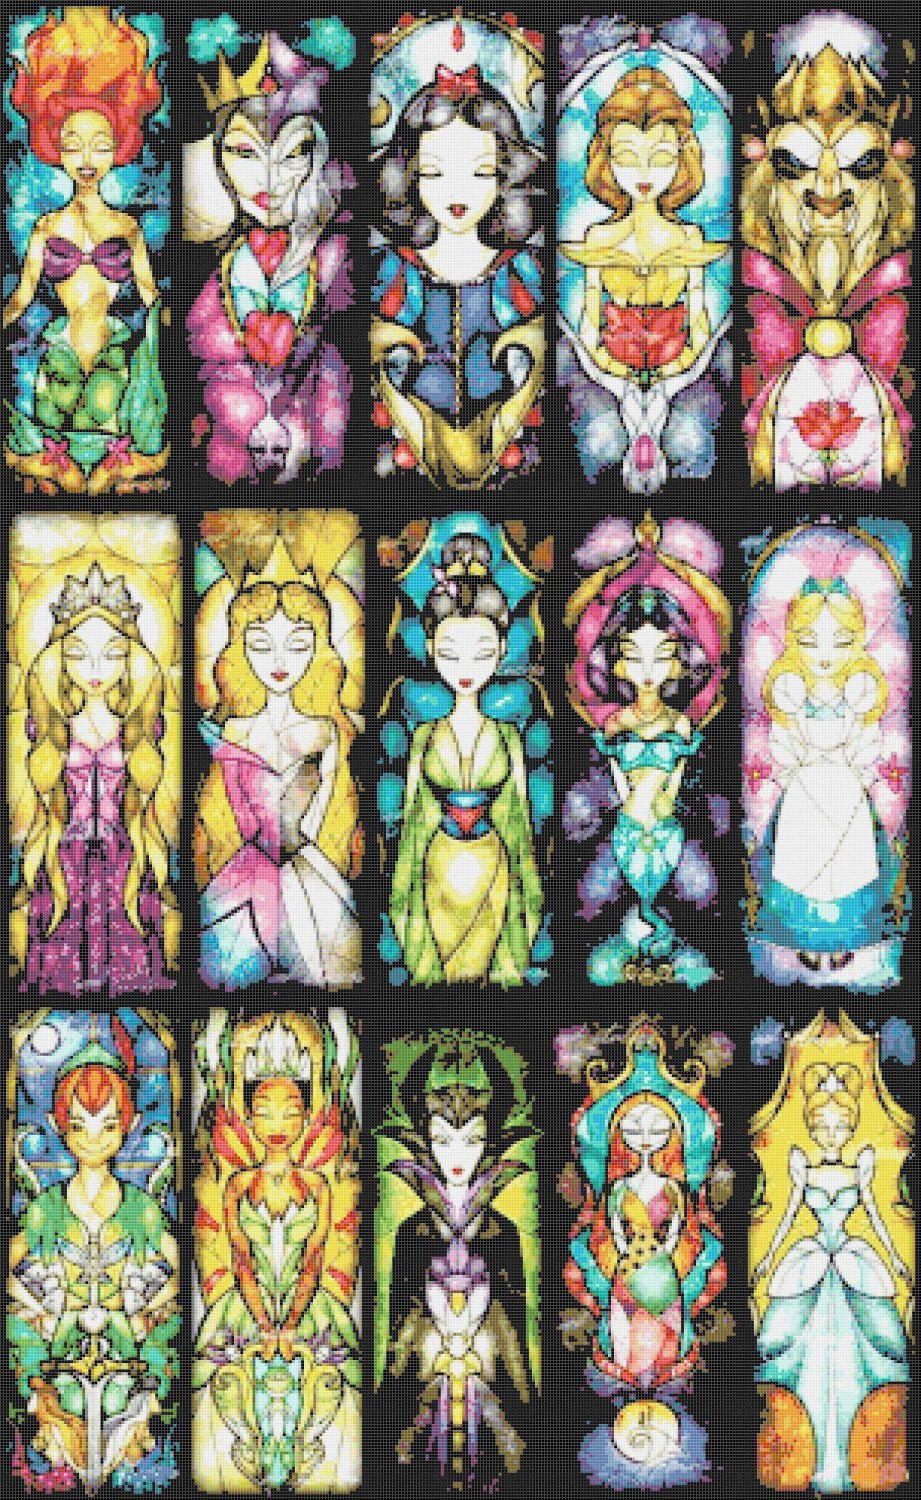 """Disney best characters - stained glass - 21.64"""" x 35.21"""" - Cross Stitch Pattern Pdf E748"""